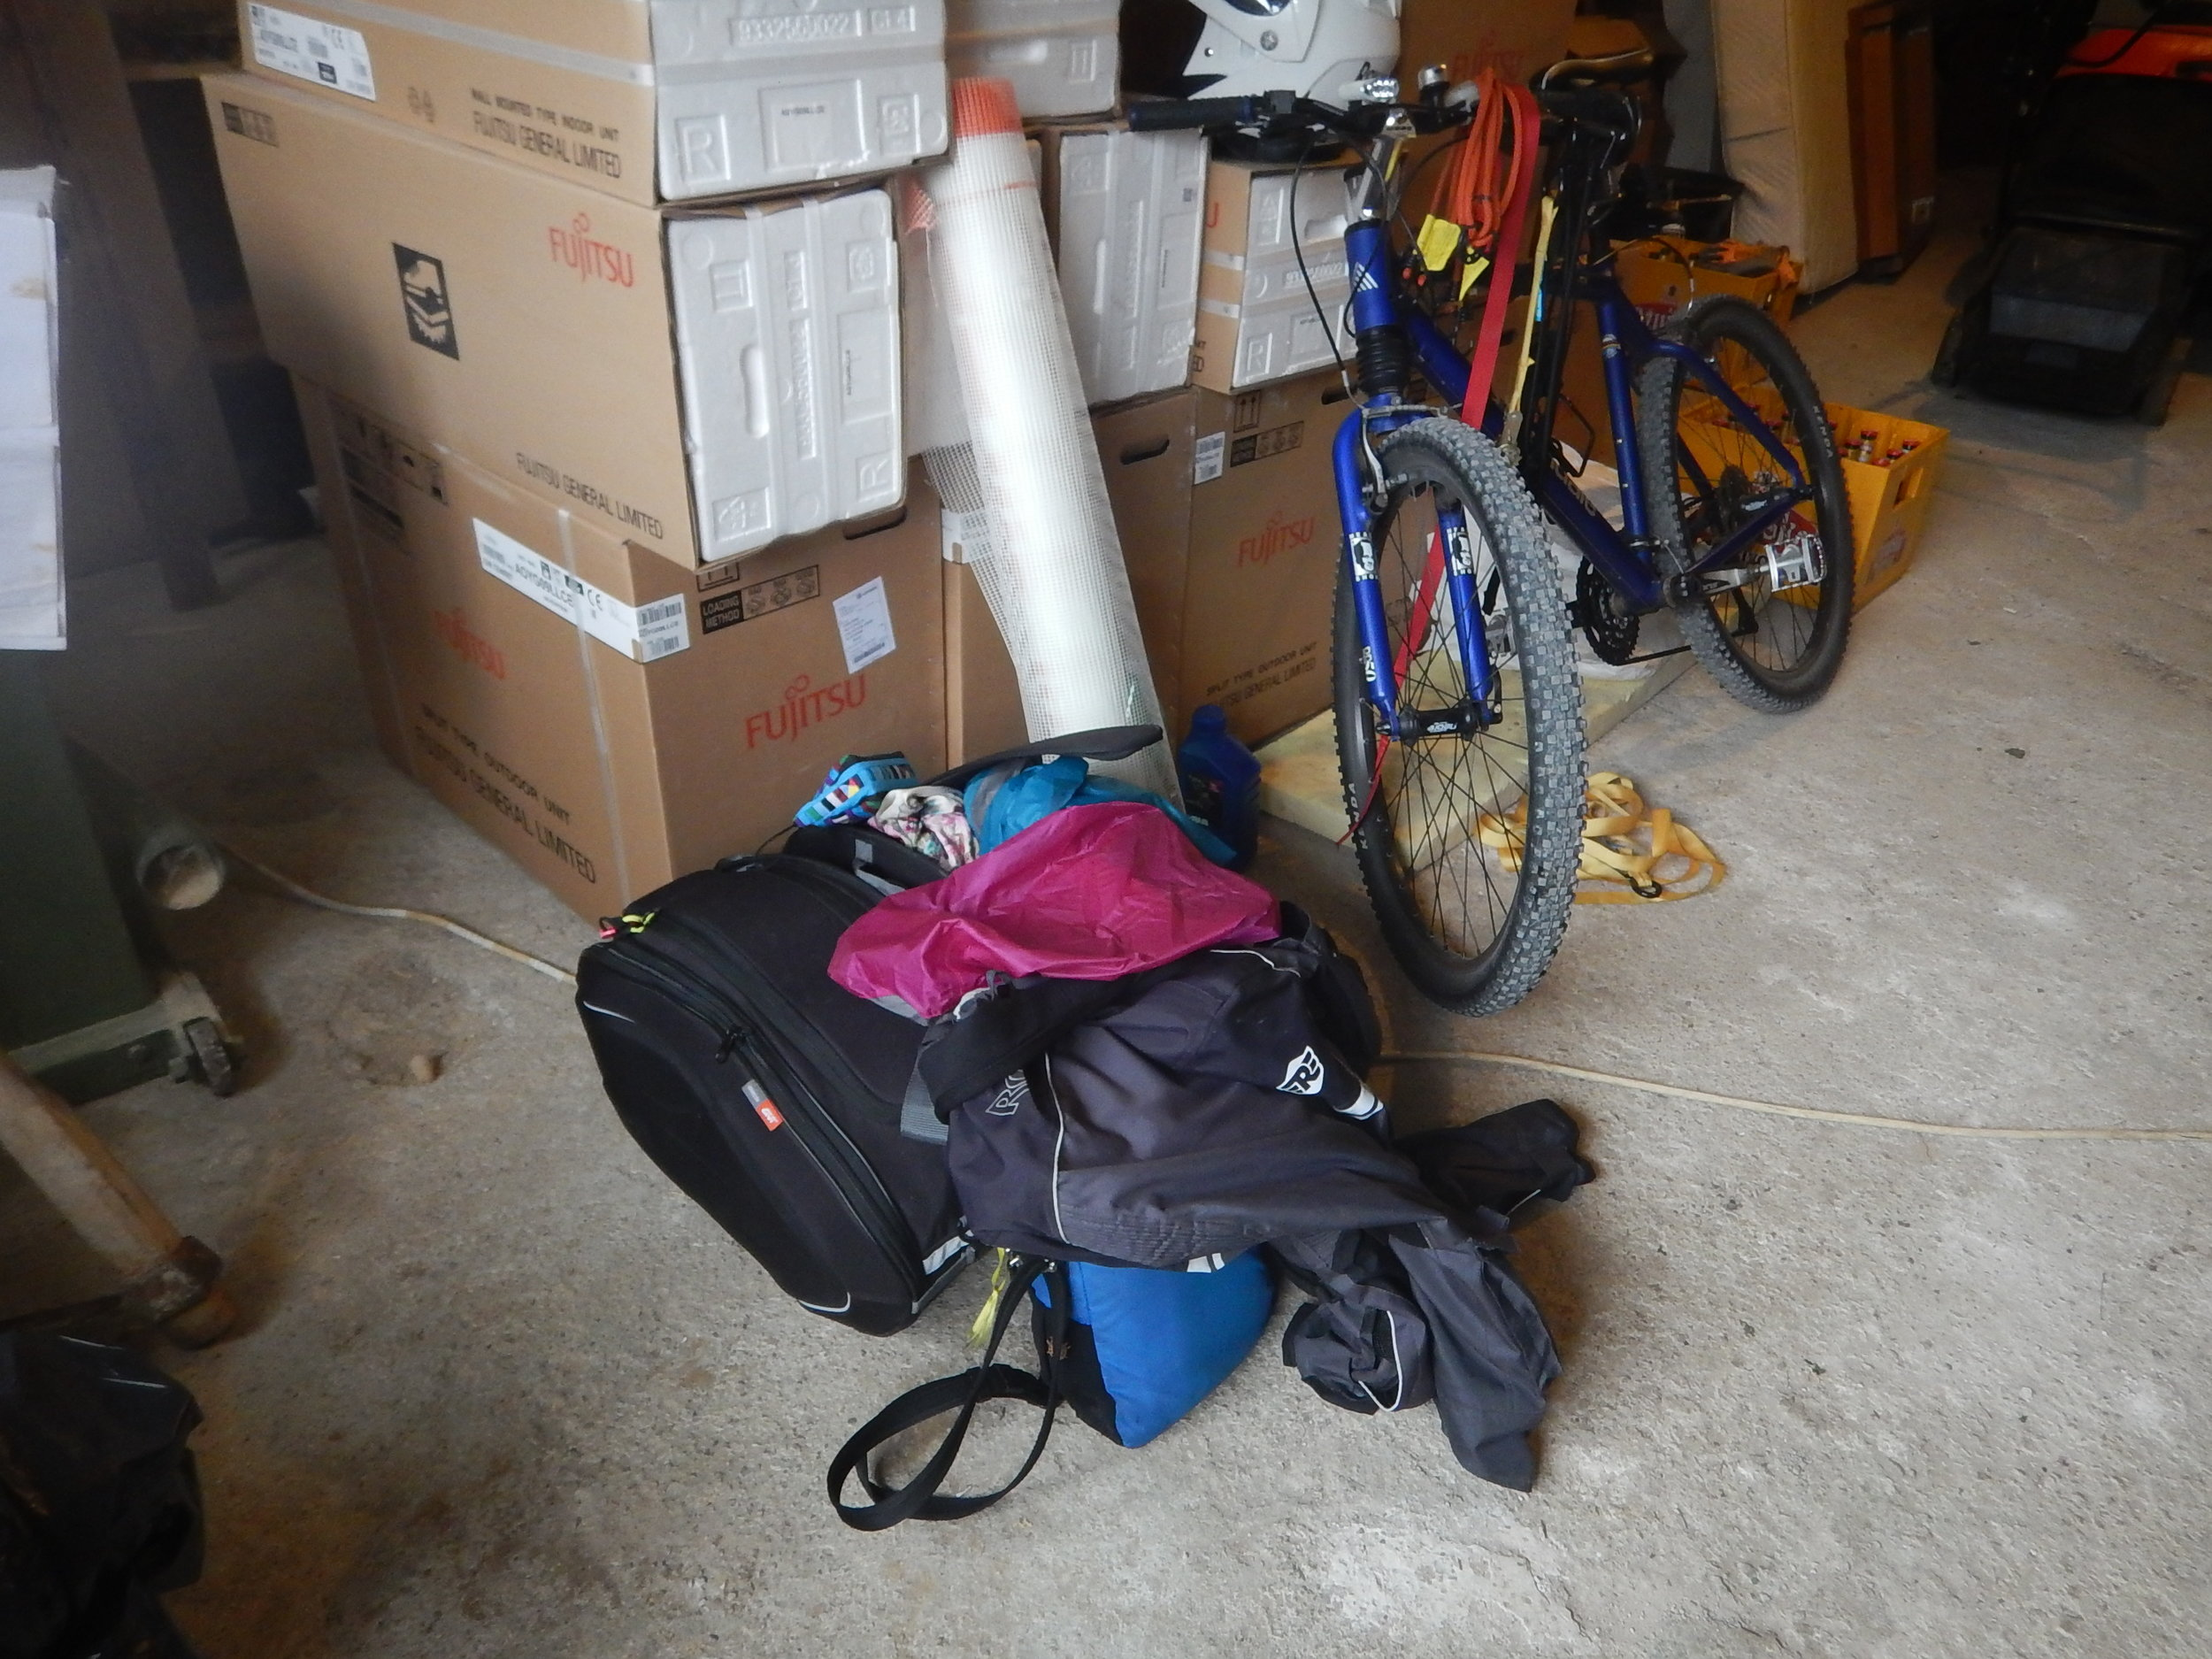 my pile of luggage and straps etc are hanging on bike handlebars.